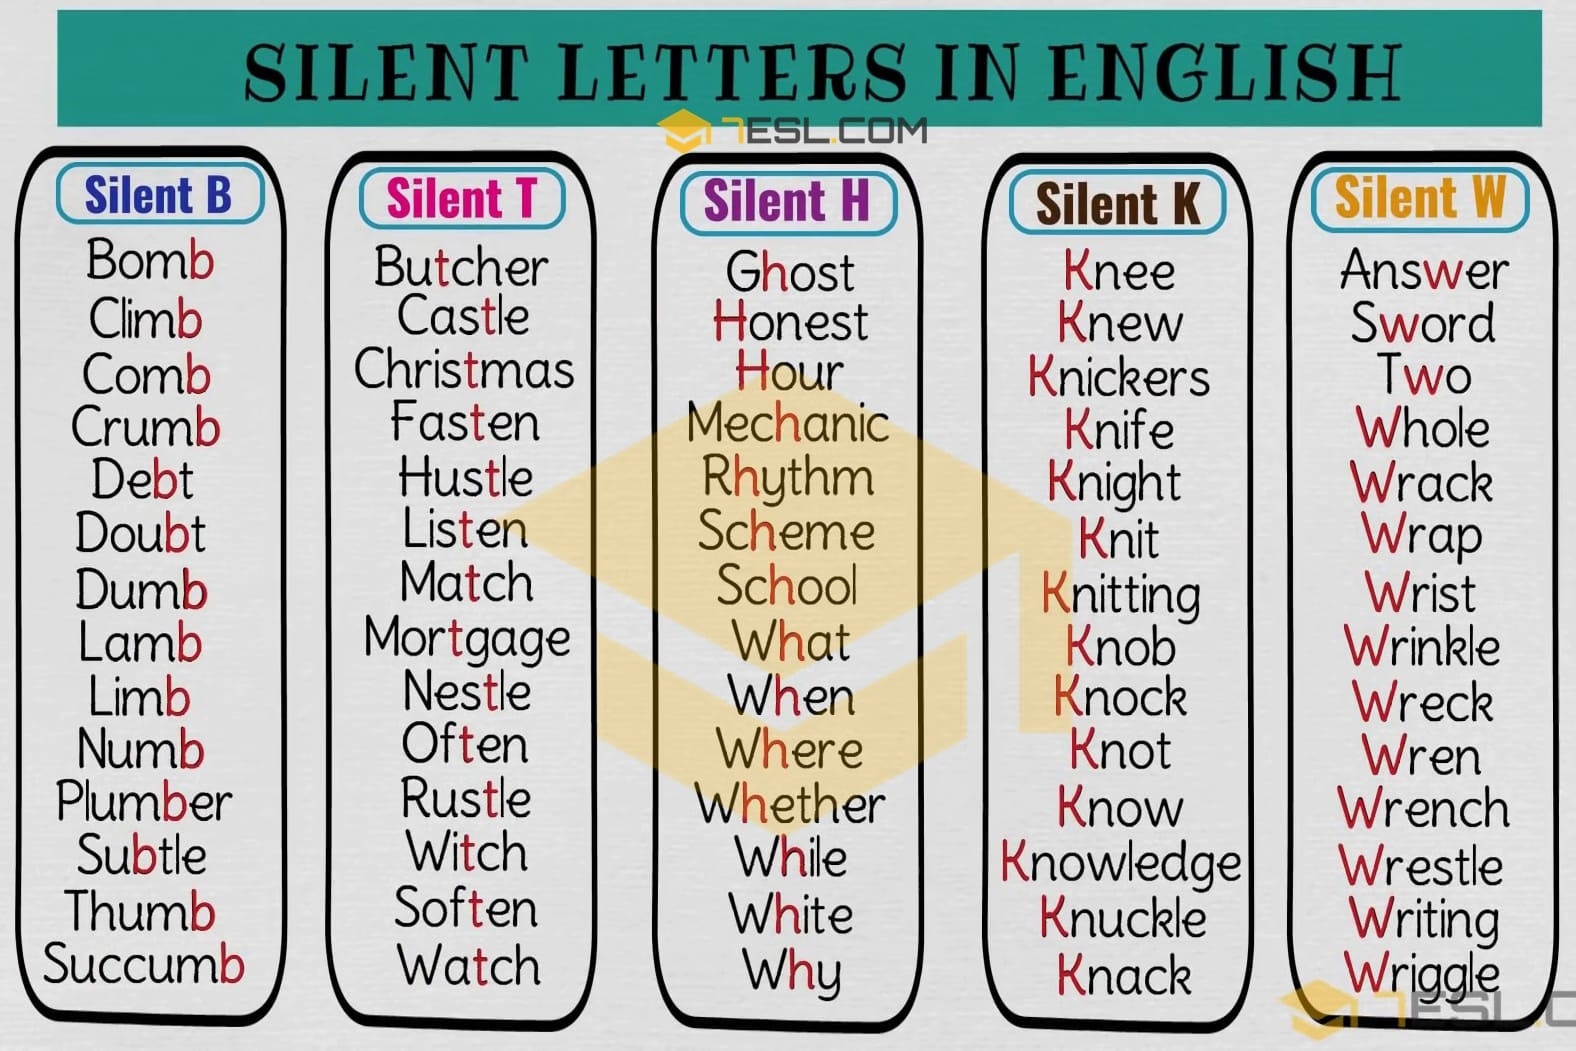 Words With Silent Letters in English